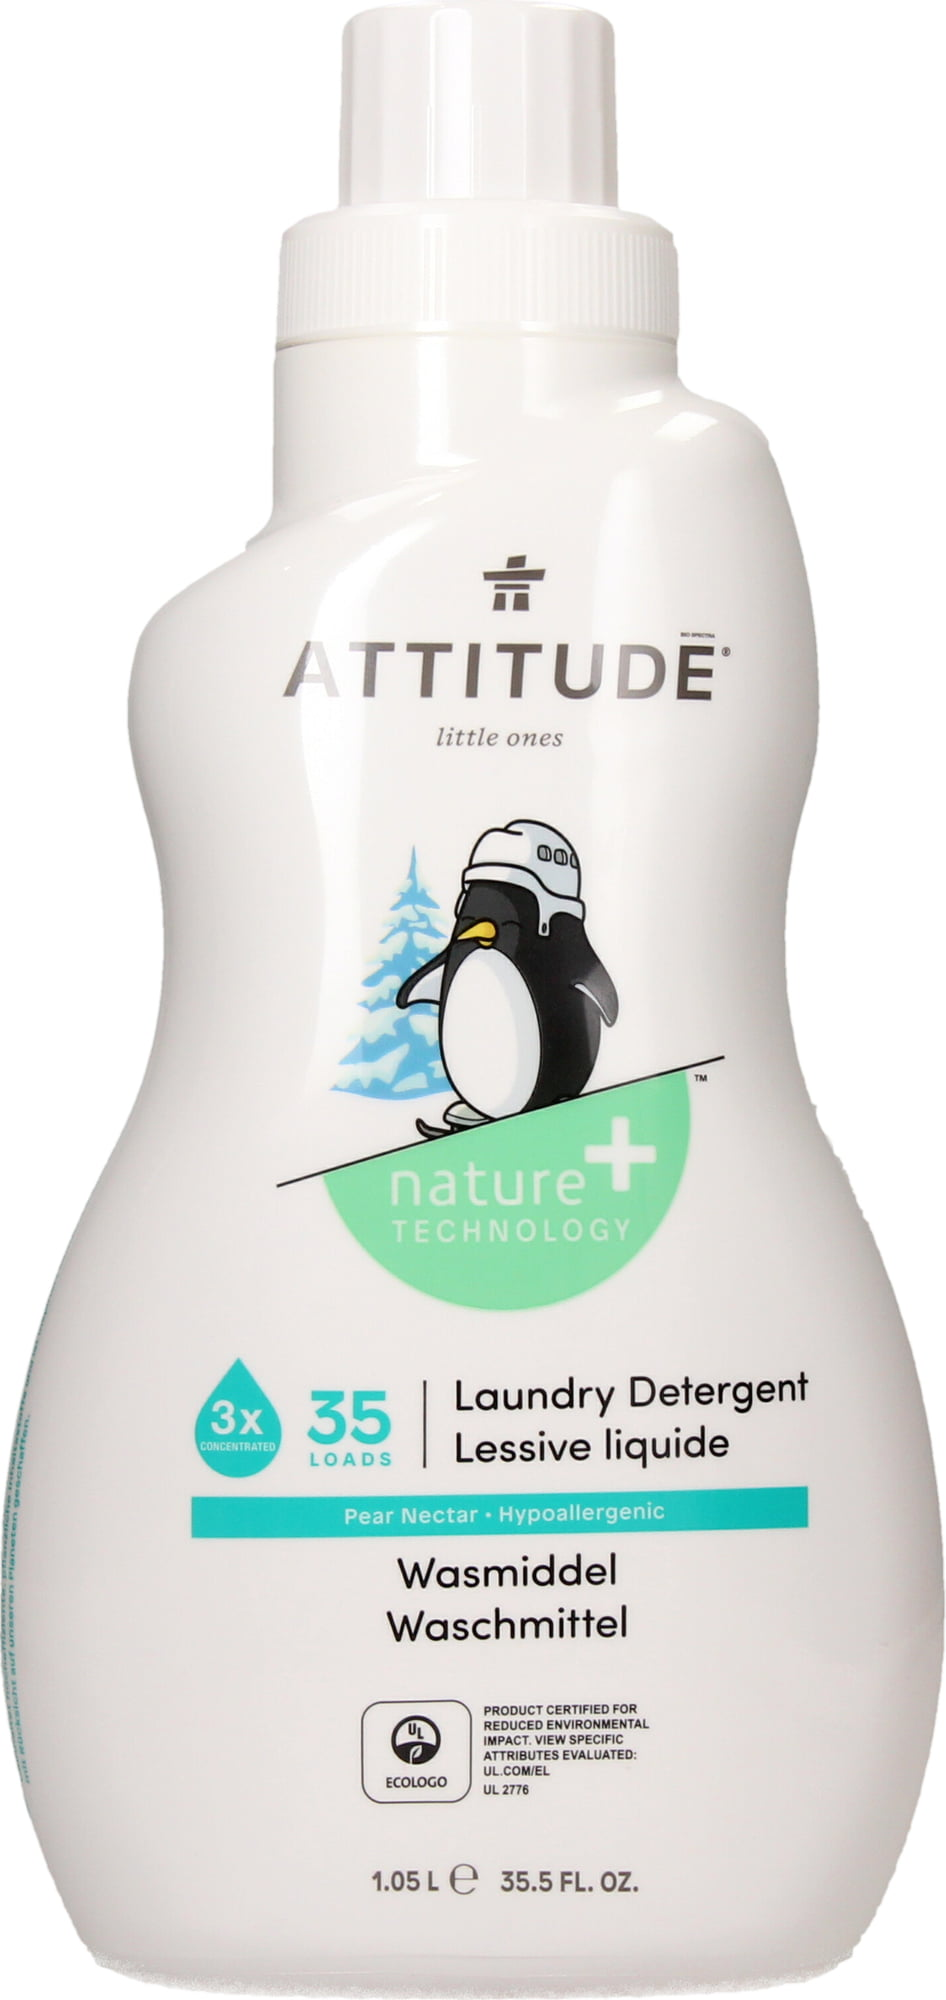 Attitude Canada- Little Ones Laundry Detergent- Pear Nectar- 35 Loads 1.05L(幼兒專用洗衣液-梨花蜜味)